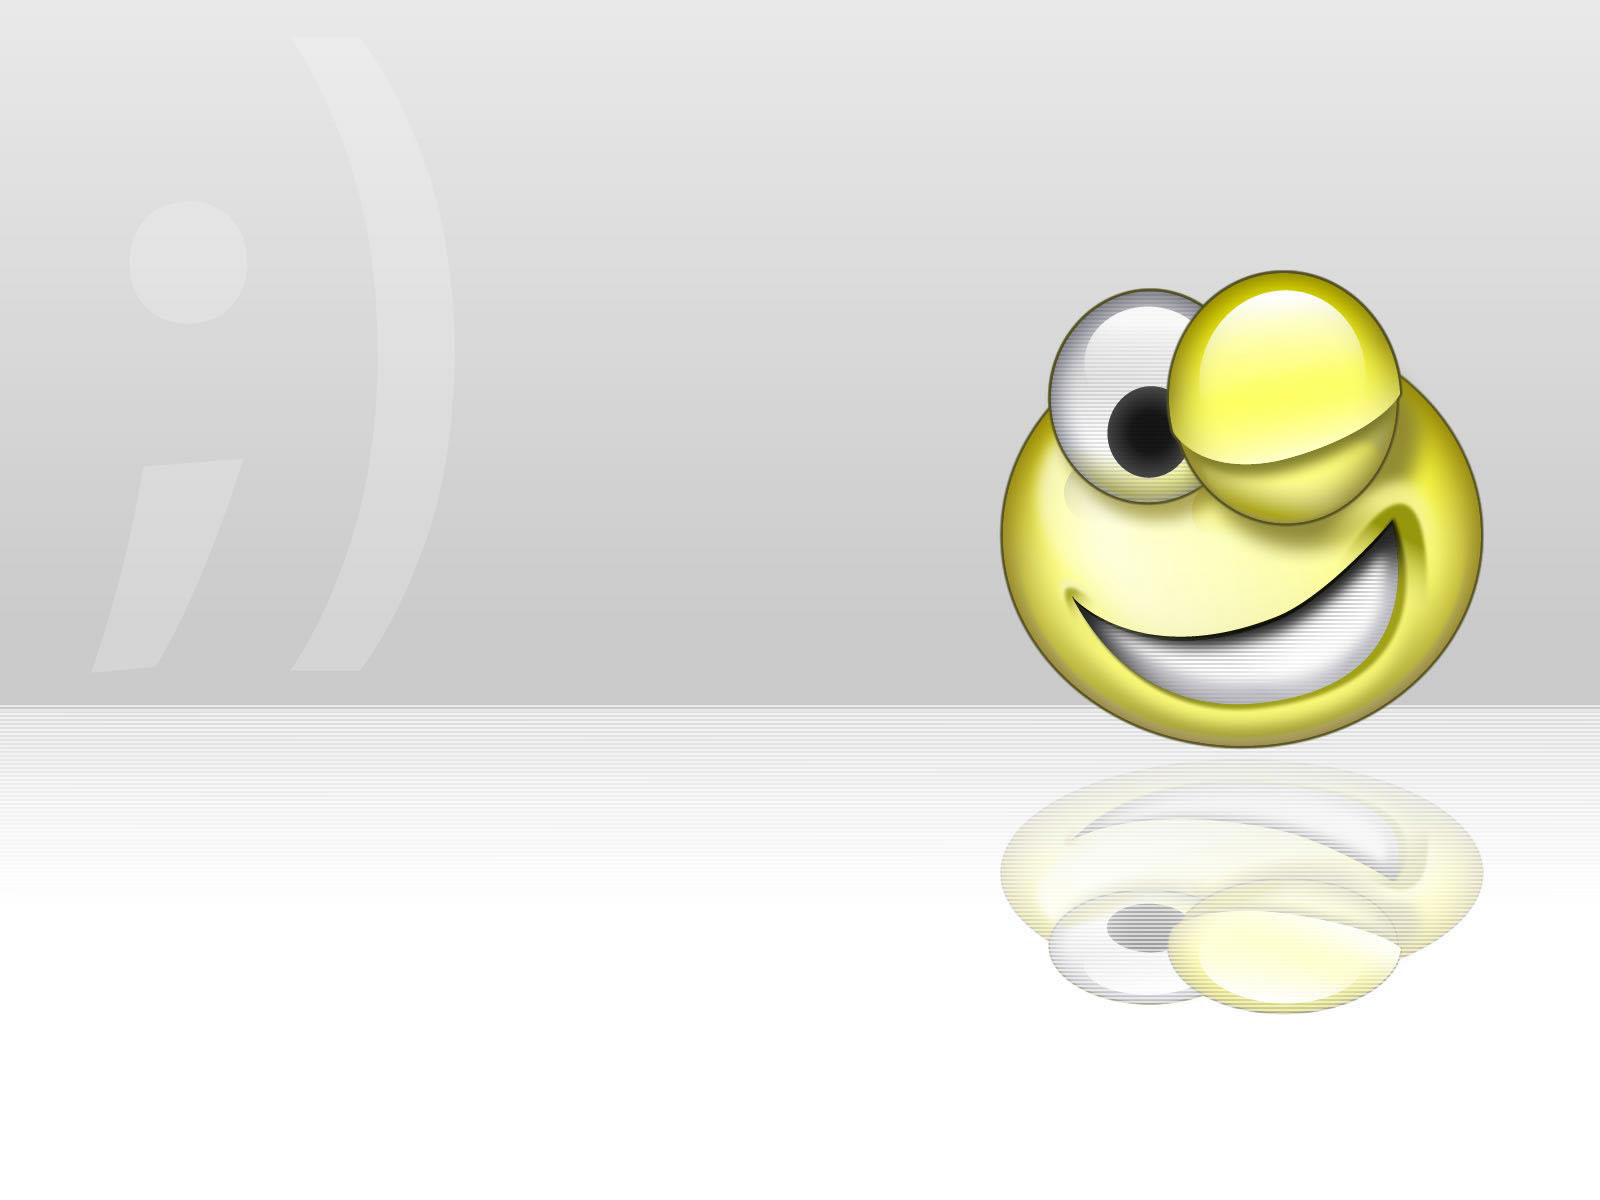 Top 20 Smiley Face Wallpaper - iPhone2Lovely |Funny Smiley Faces Wallpaper